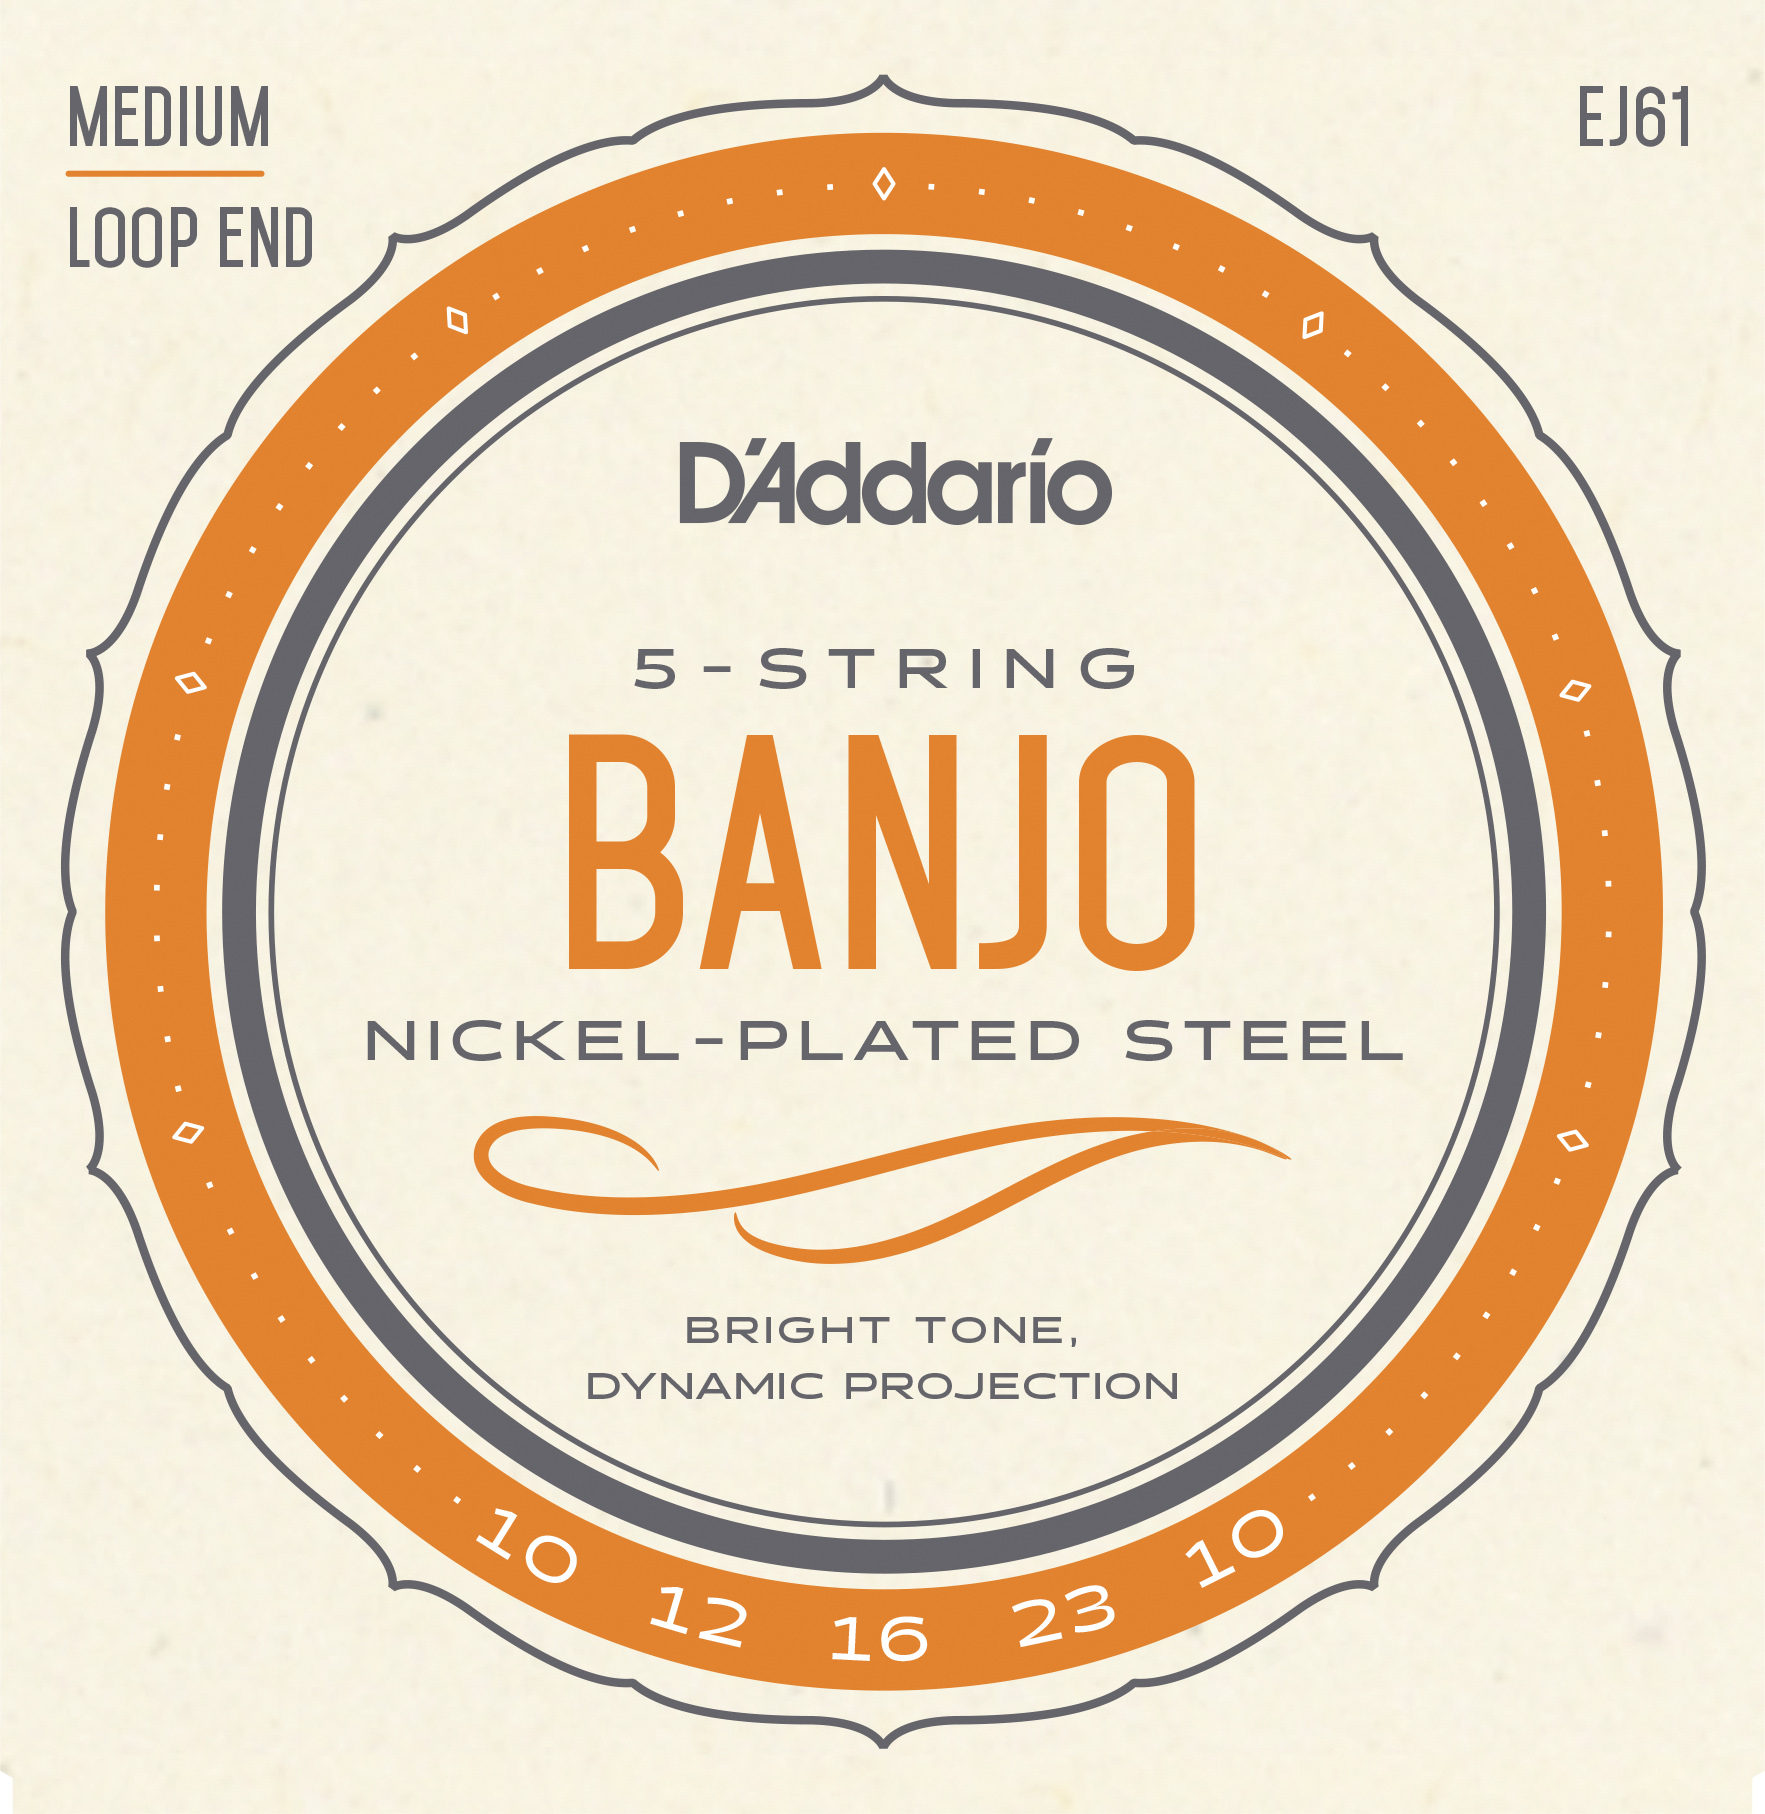 D'Addario Nickel EJ61 Banjo Strings, 5-String, Medium, 10-23